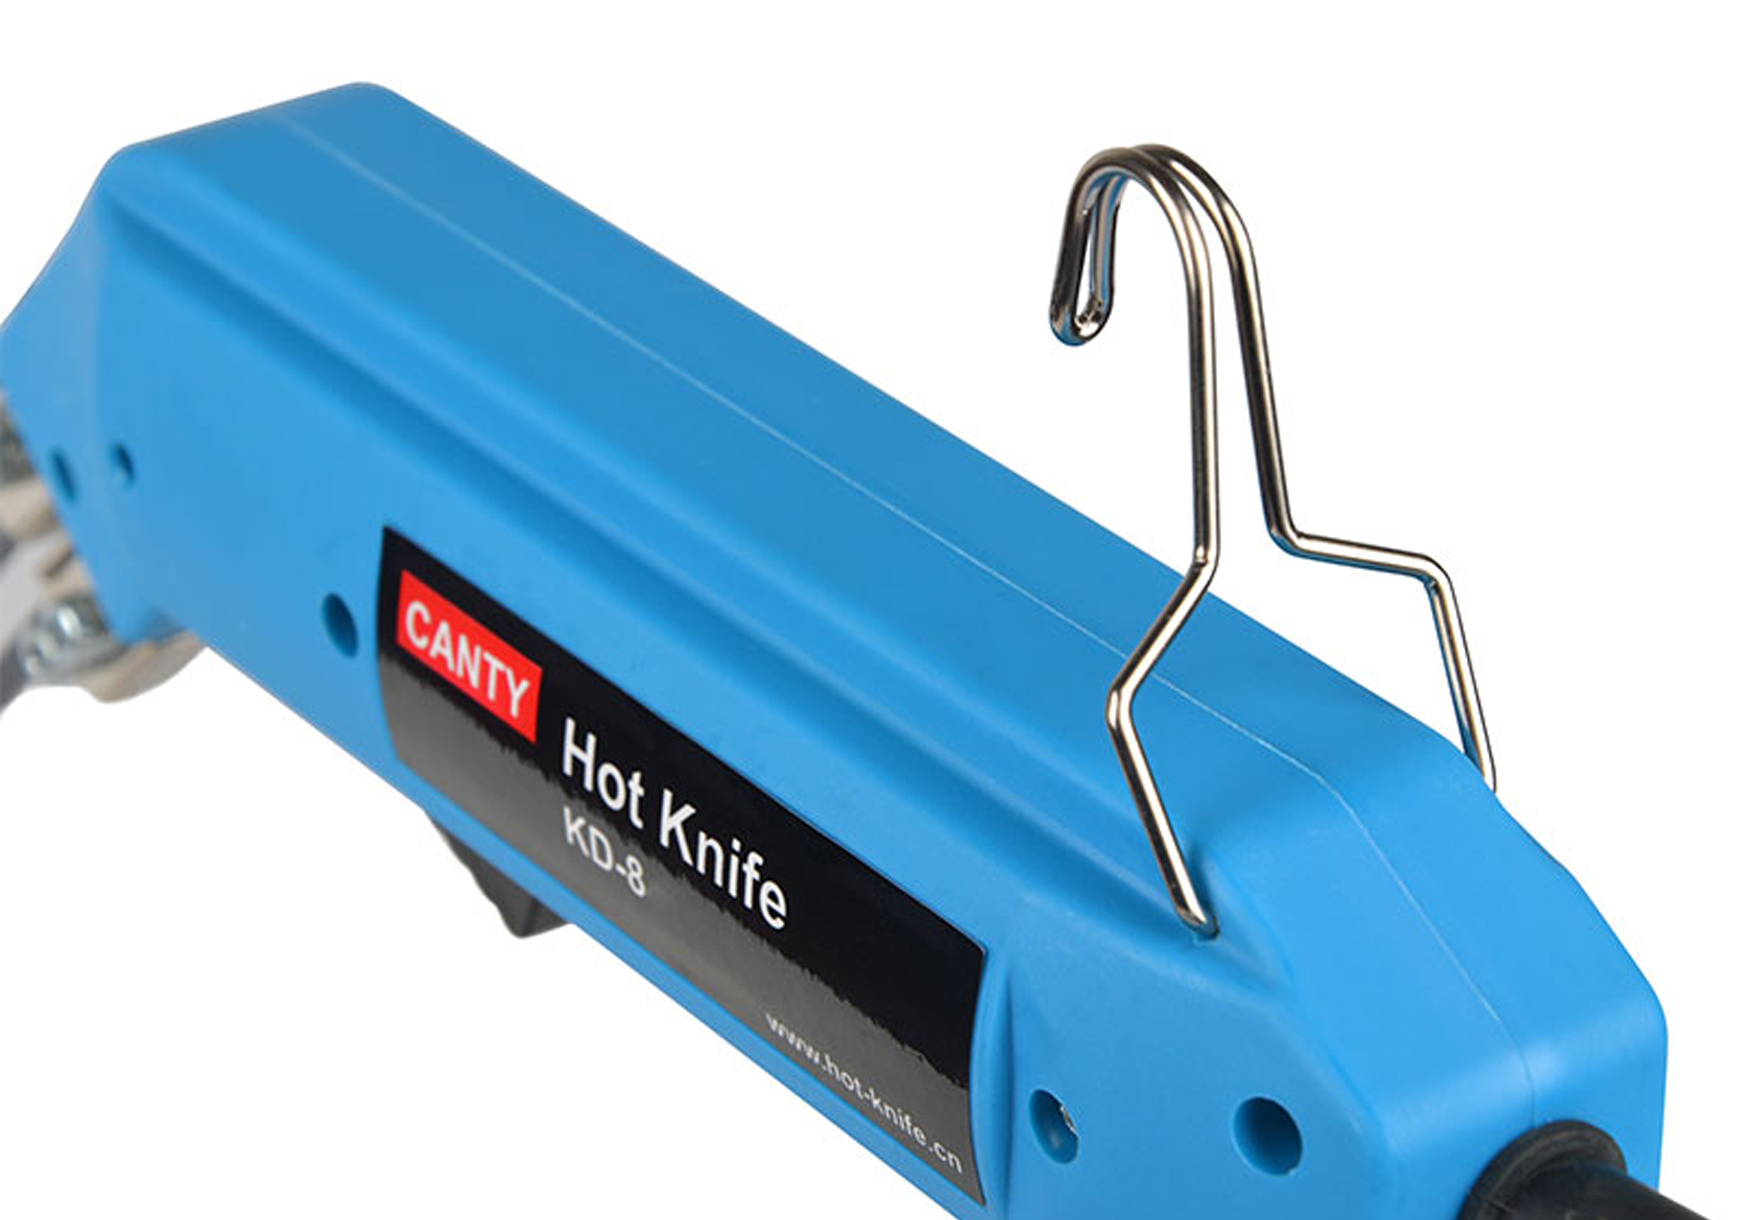 KD-8 Hot Knife Foam Cutter